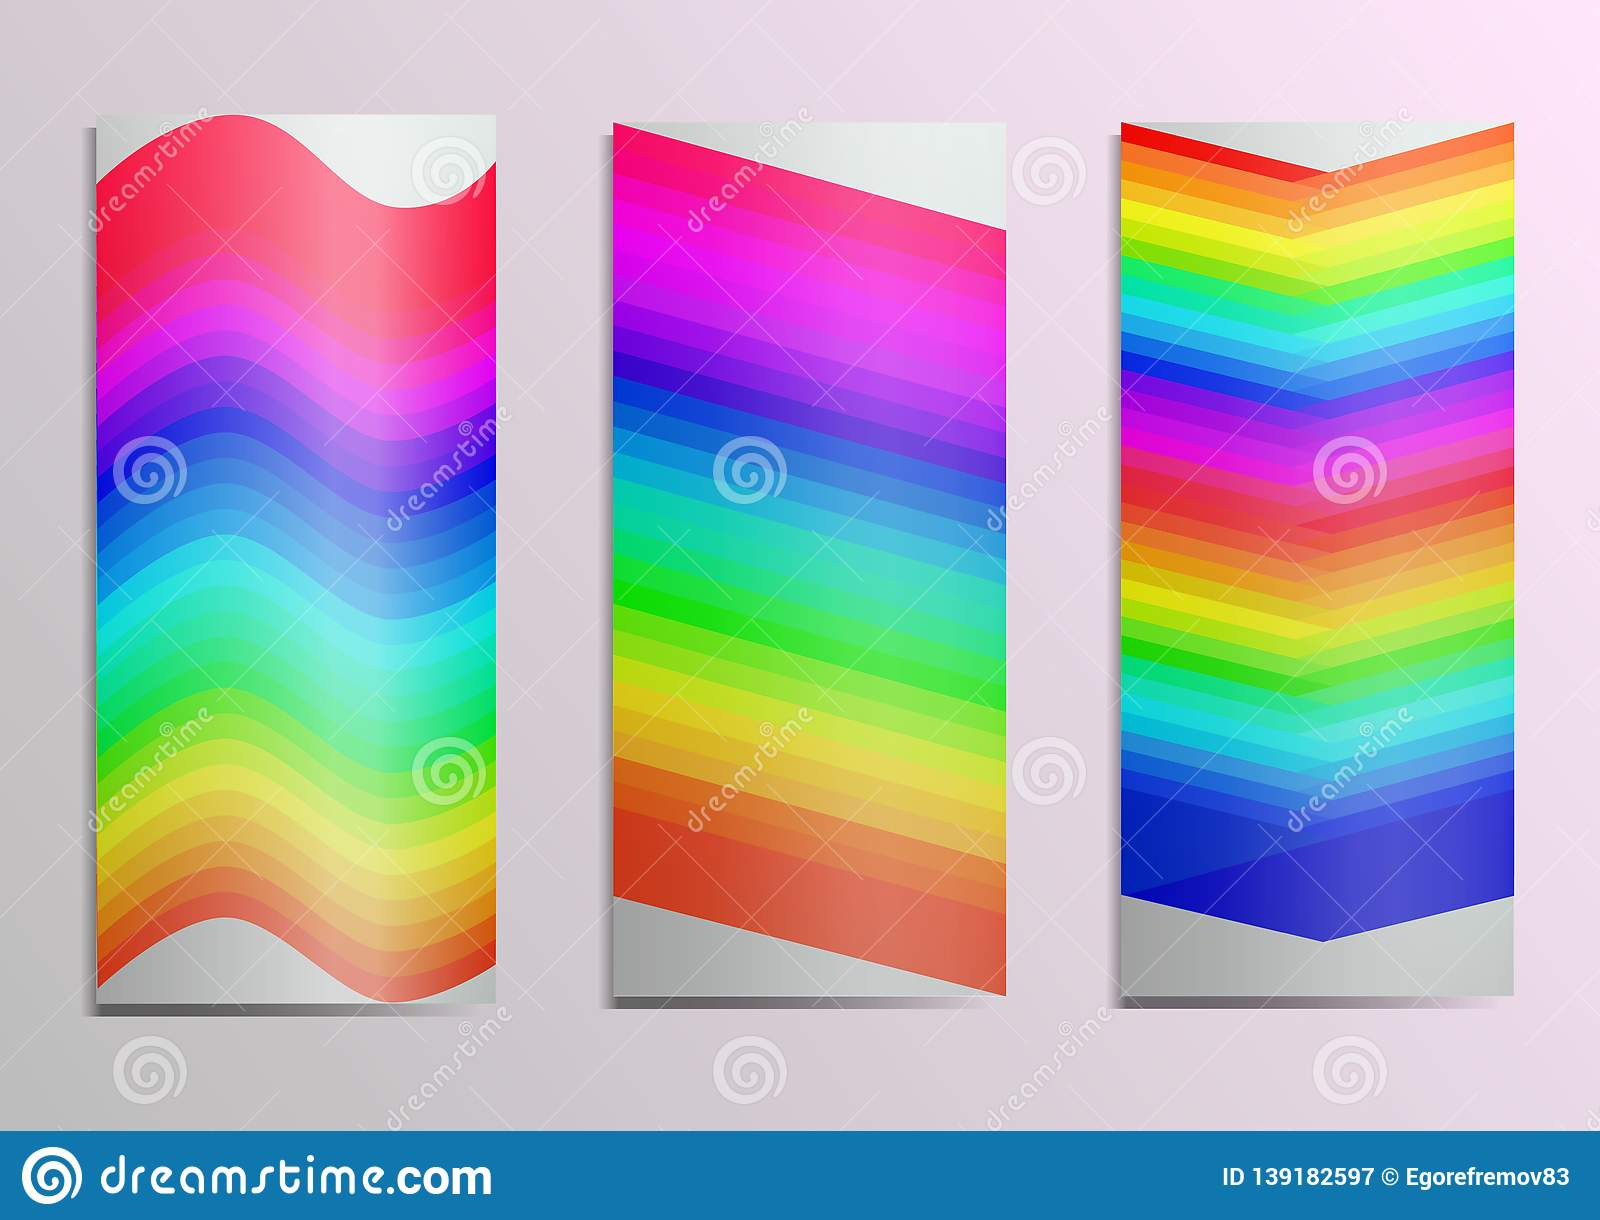 Template For Postcards Rainbow On The Cover Gracefully Emphasizes